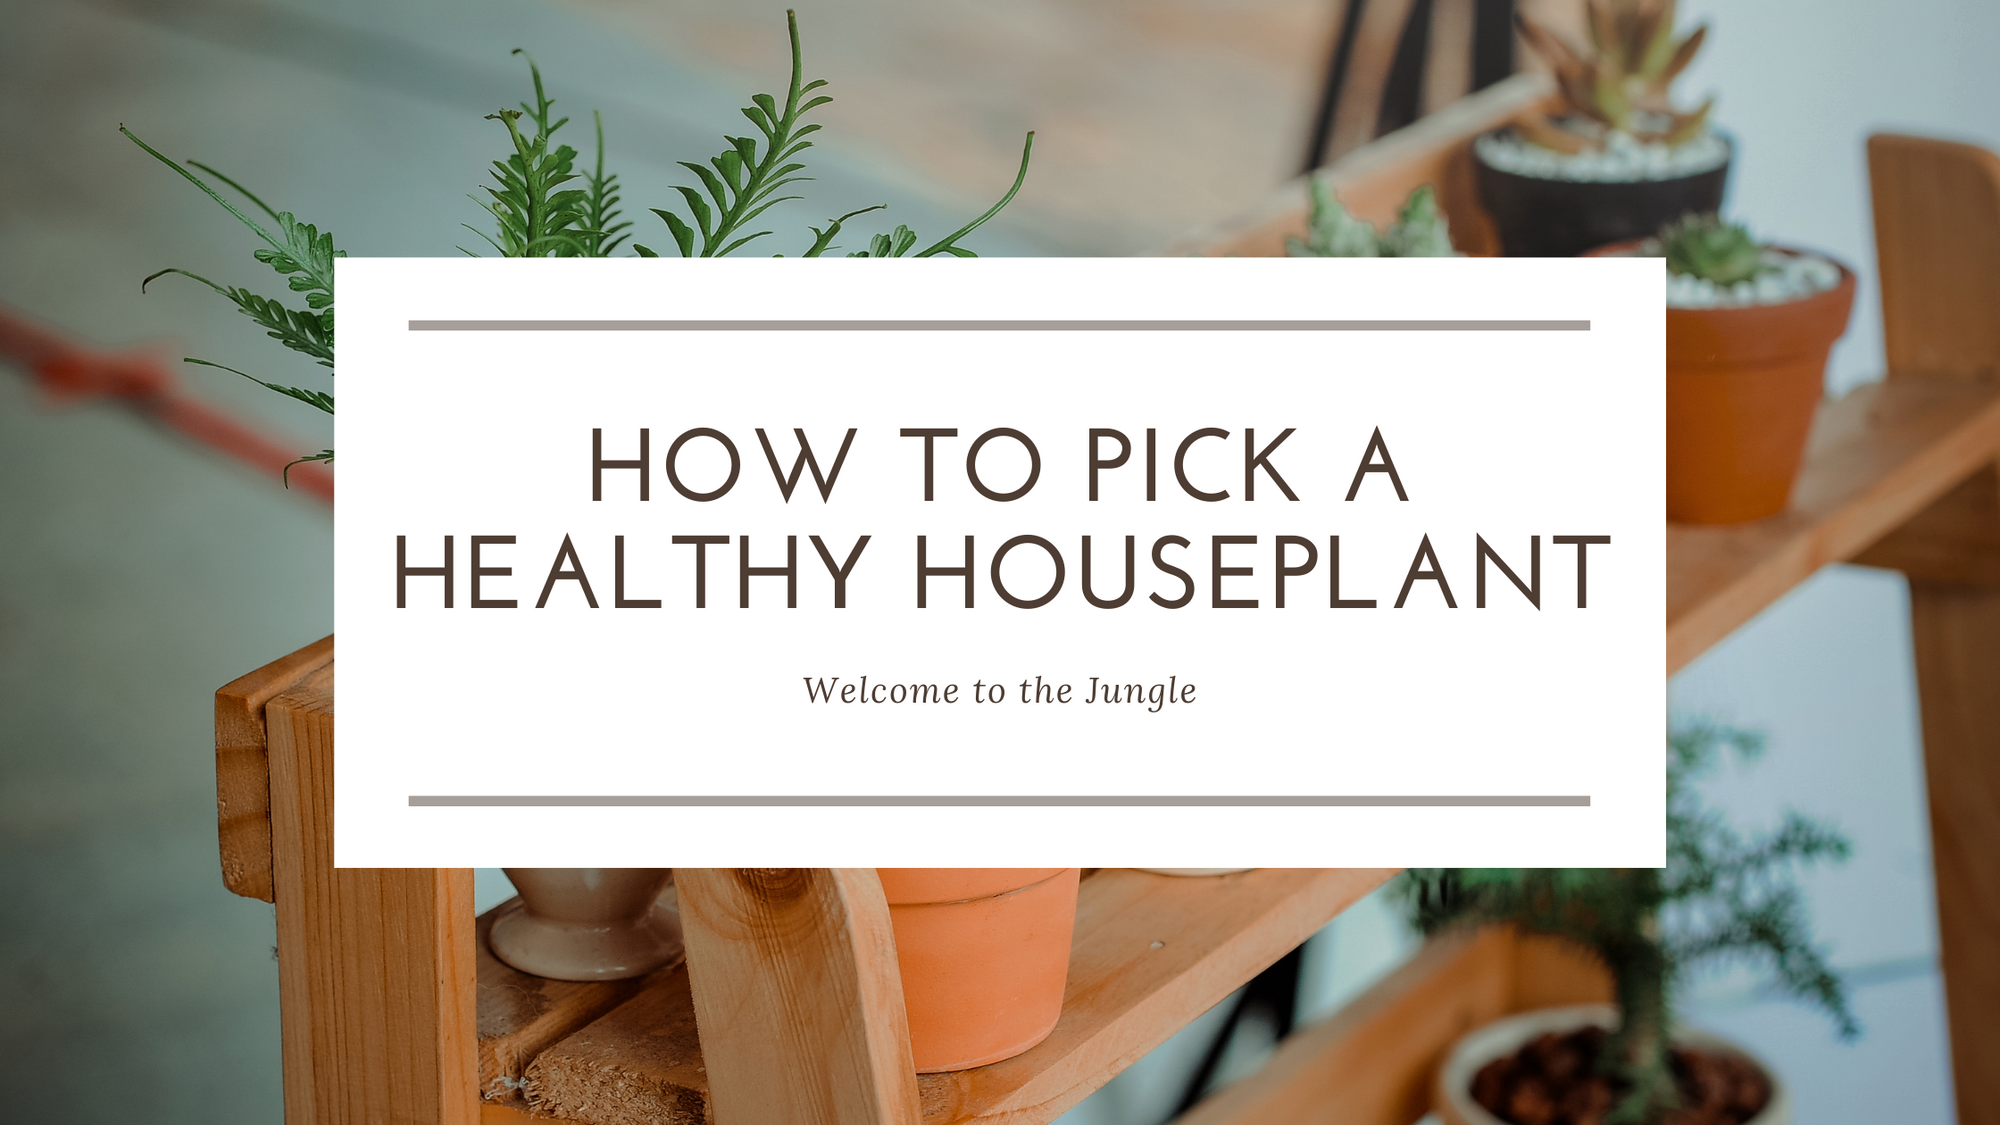 How to Pick a Healthy Houseplant